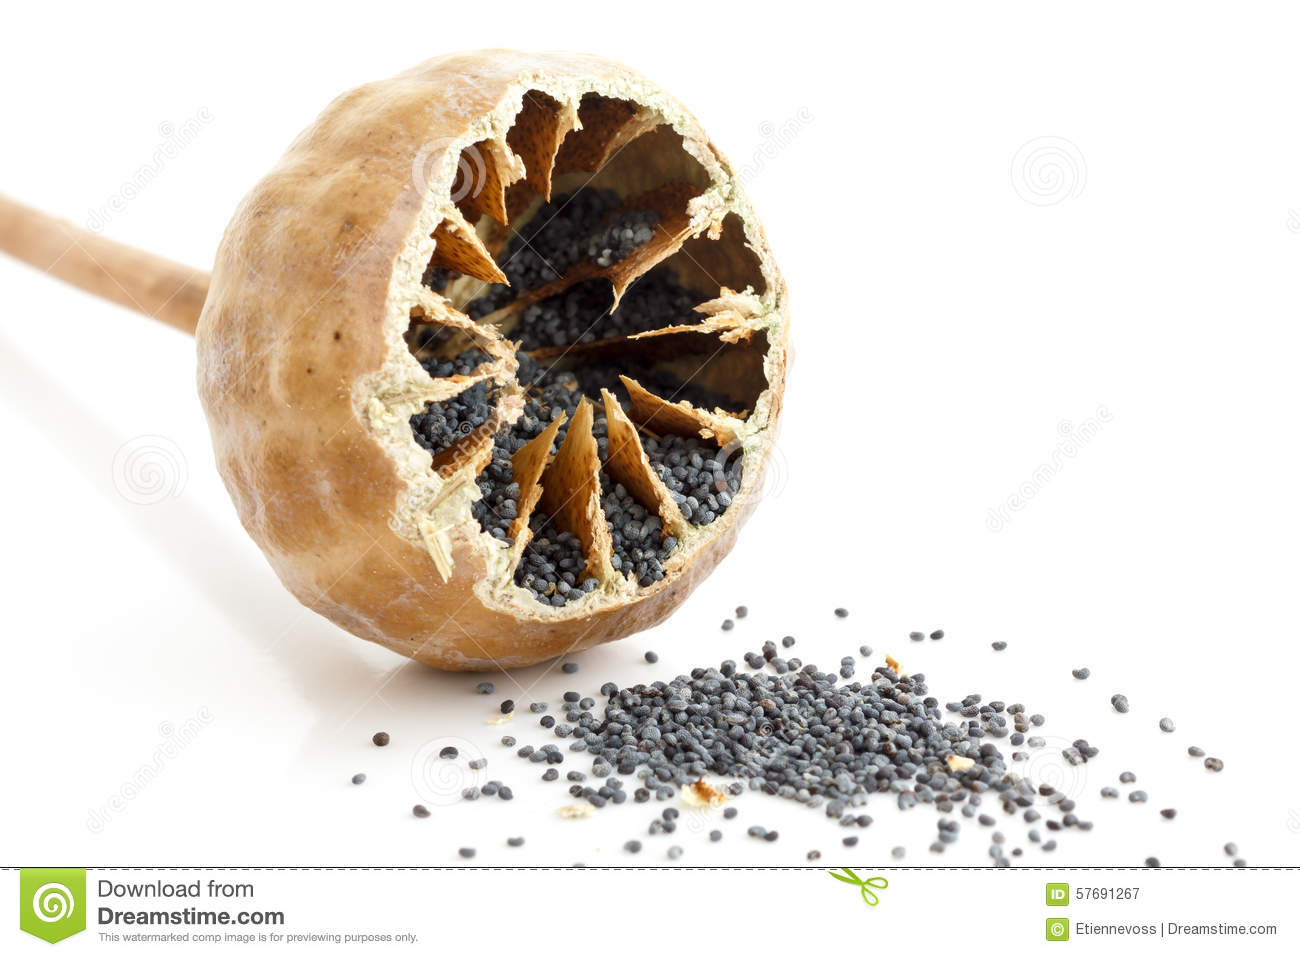 how to cut open a mango seed